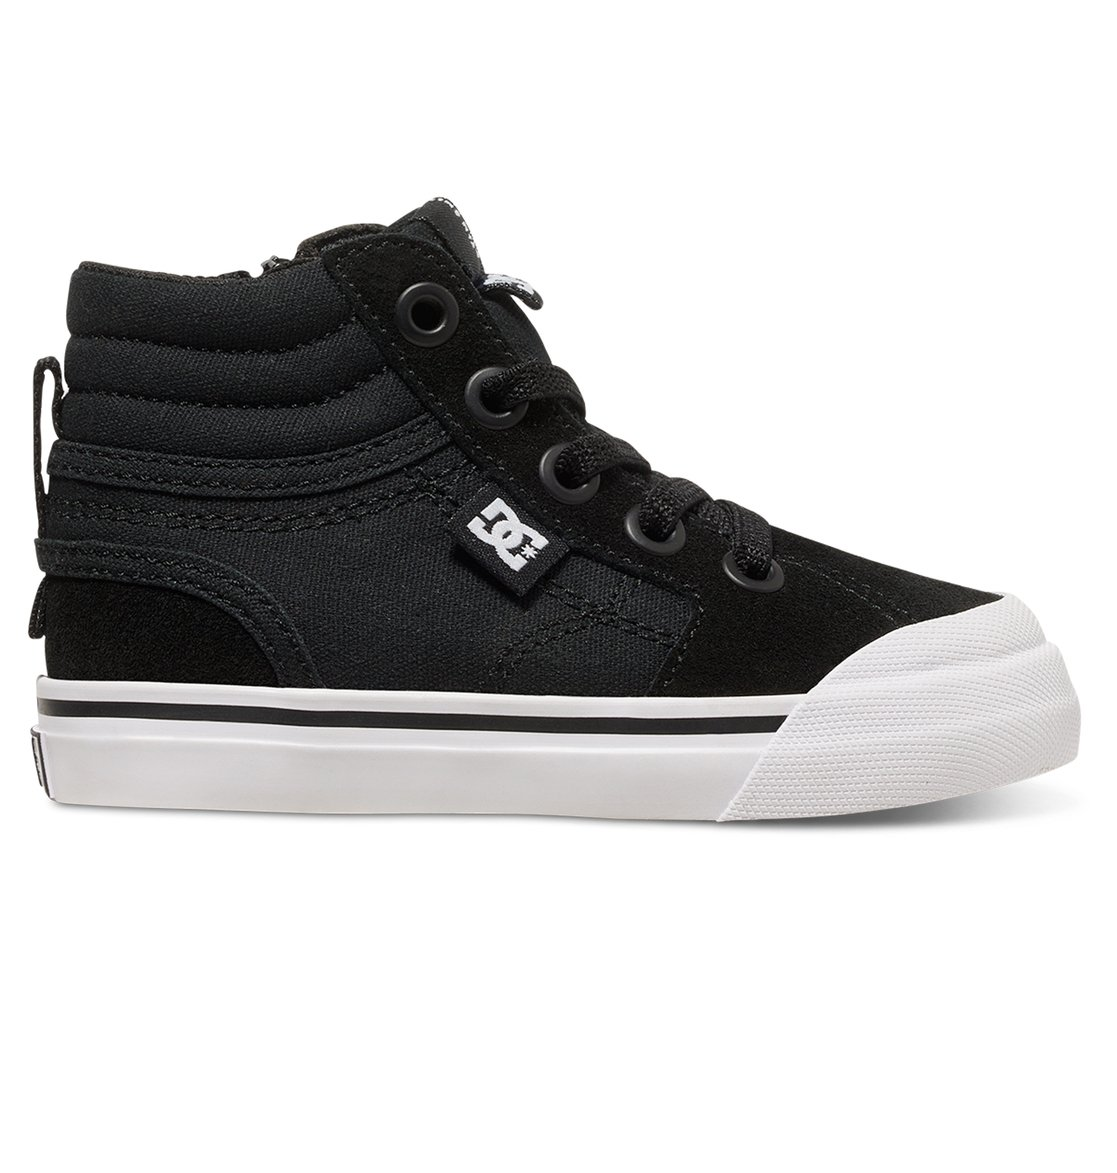 nike shoes black high tops. 0 toddler evan hi high top shoes black adts300023 dc nike tops u